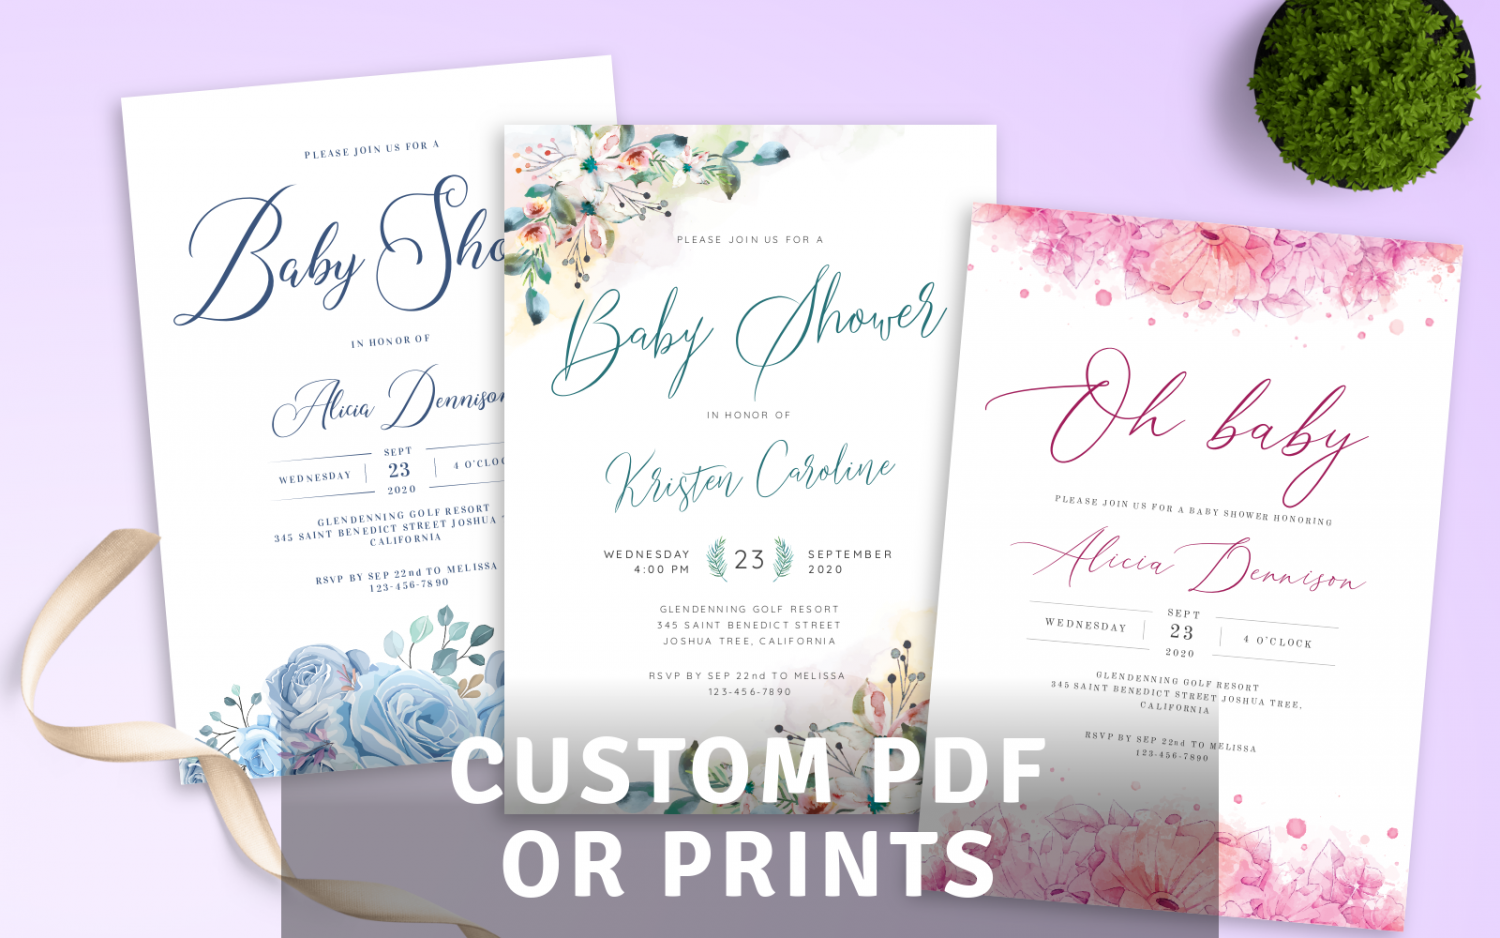 Download or Print Baby Shower Invitations